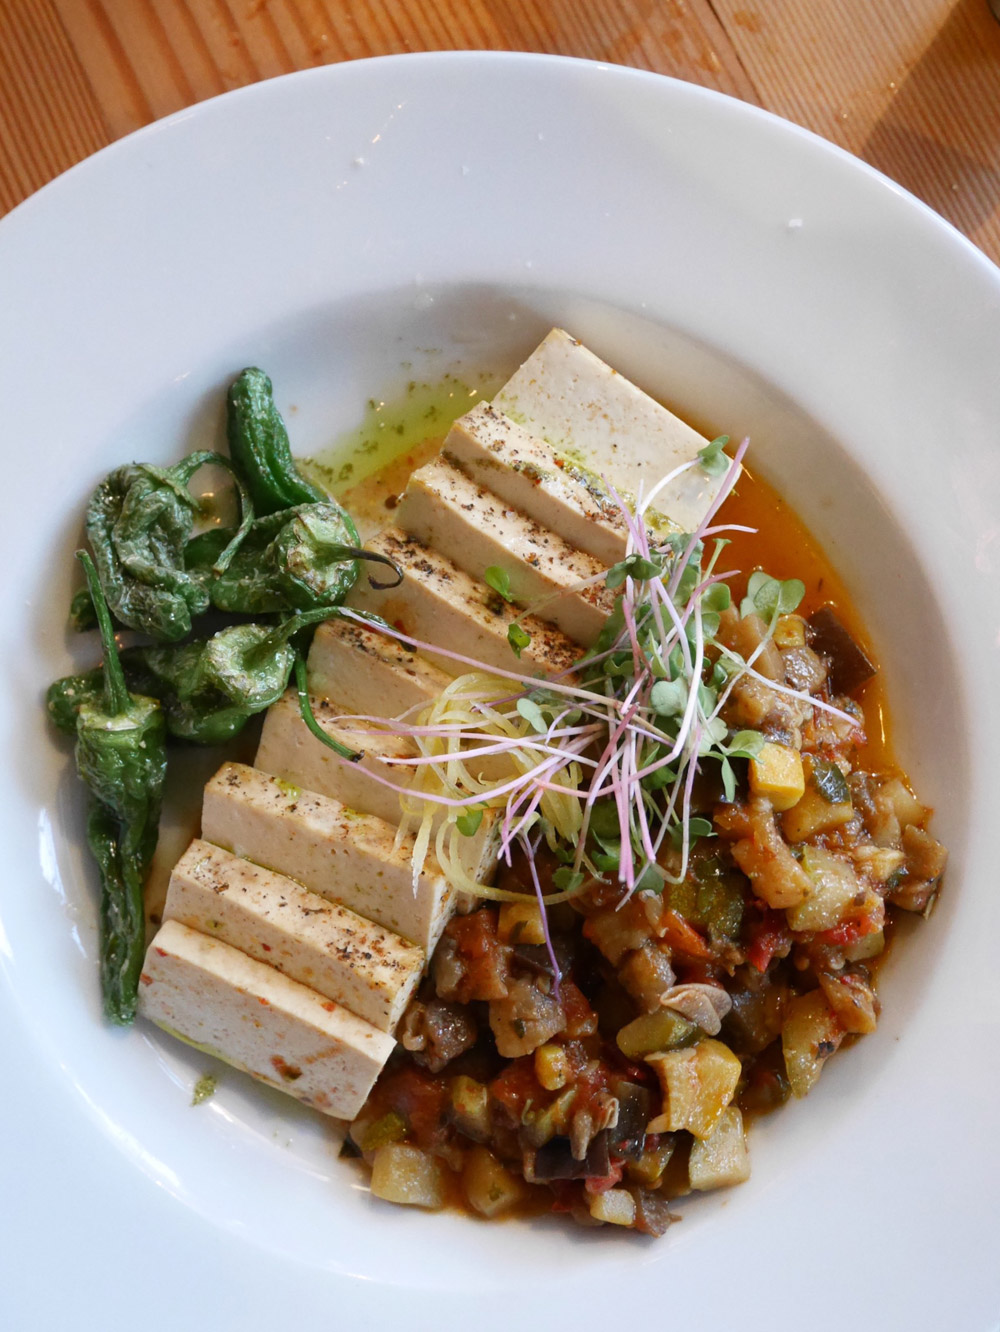 Smoked & Spiced Tofu with Summer Ratatouille, SouthFork Vegan Popup, Portland